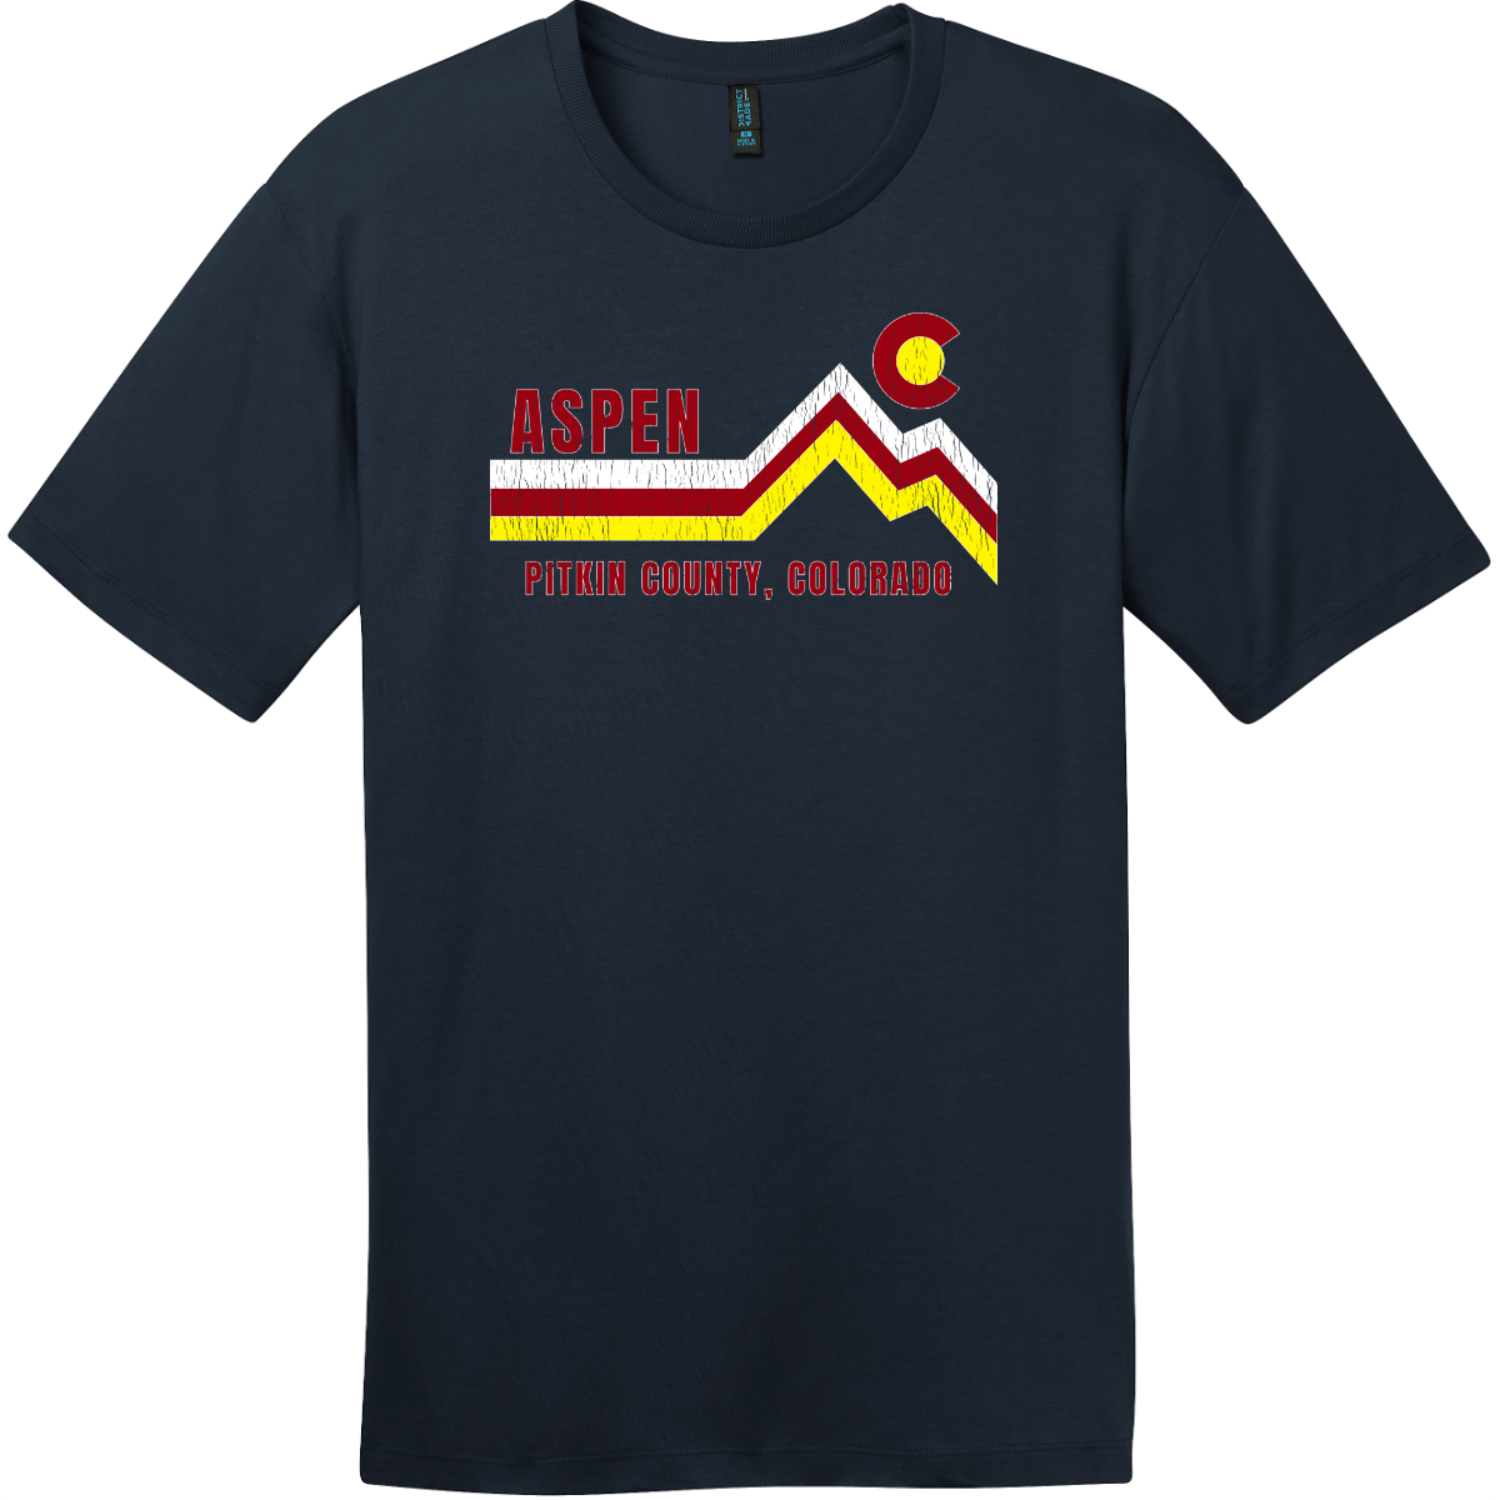 Aspen Pitkin County Colorado T-Shirt New Navy District Perfect Weight Tee DT104